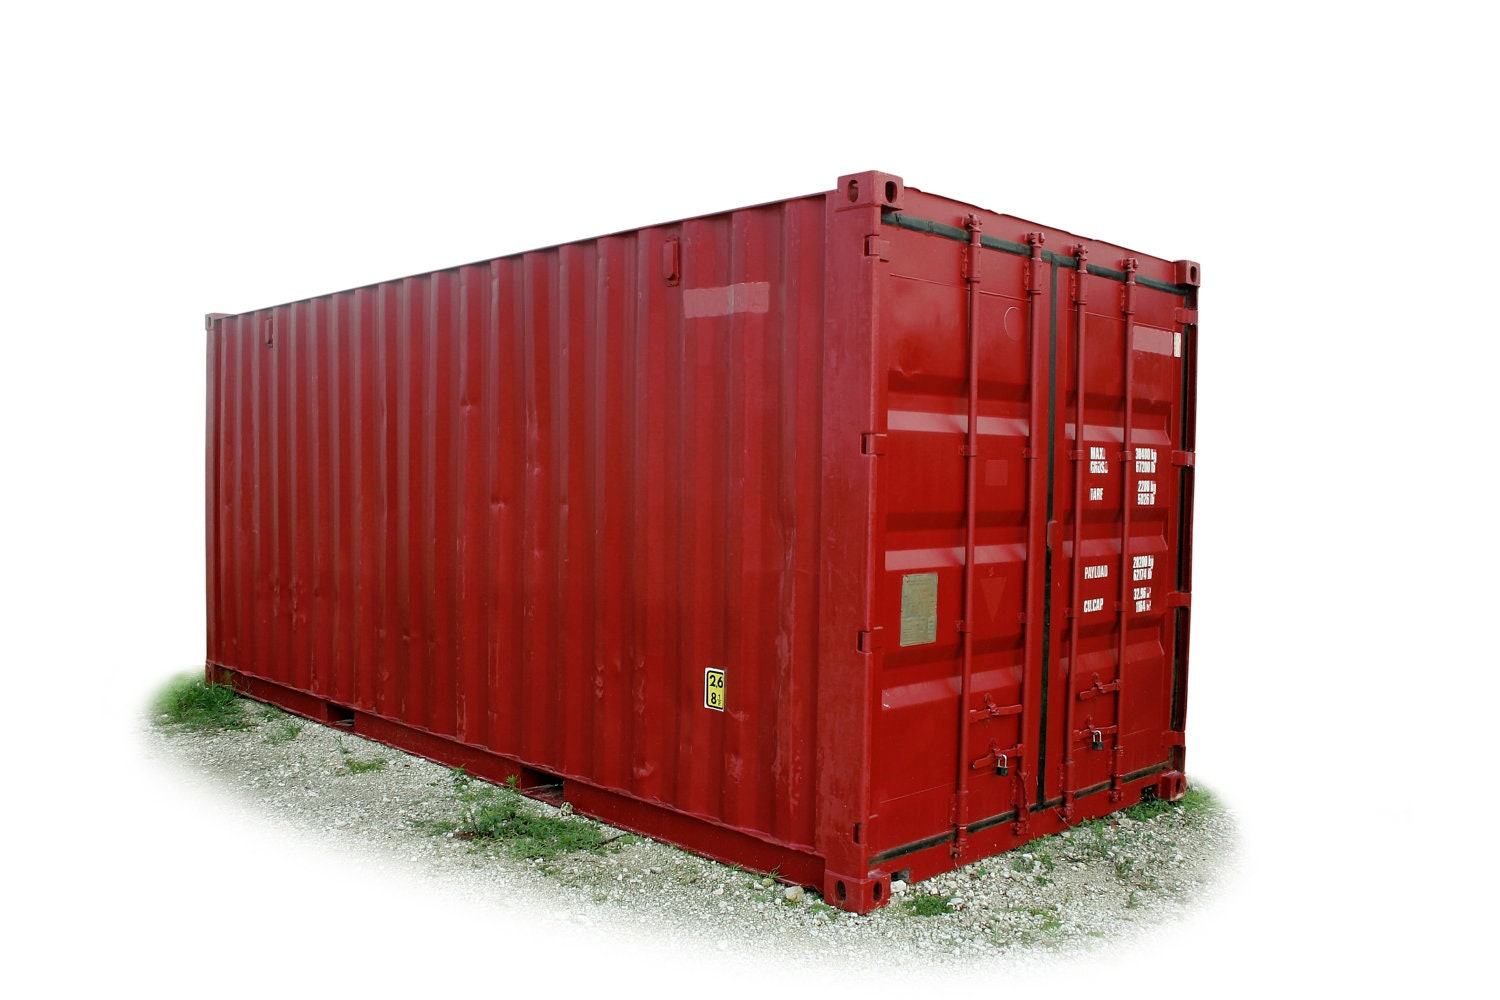 Shipping container home plans diy small house by kathyzkorner - Shipping container homes diy ...